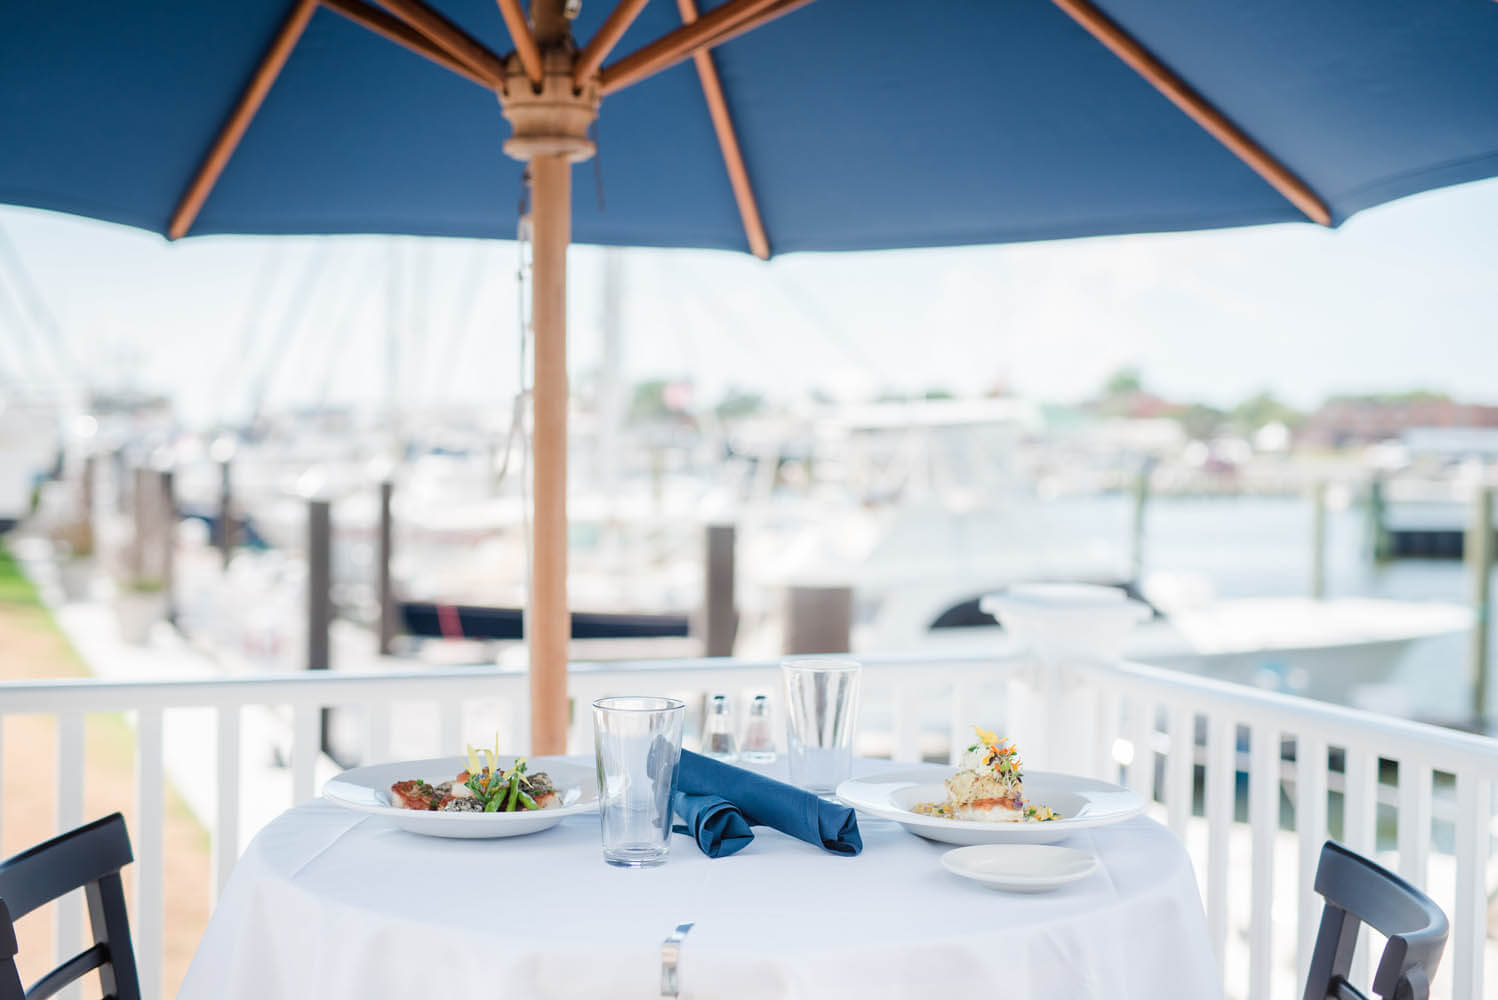 Close up of a restaurant table with two dishes, with harbor in background